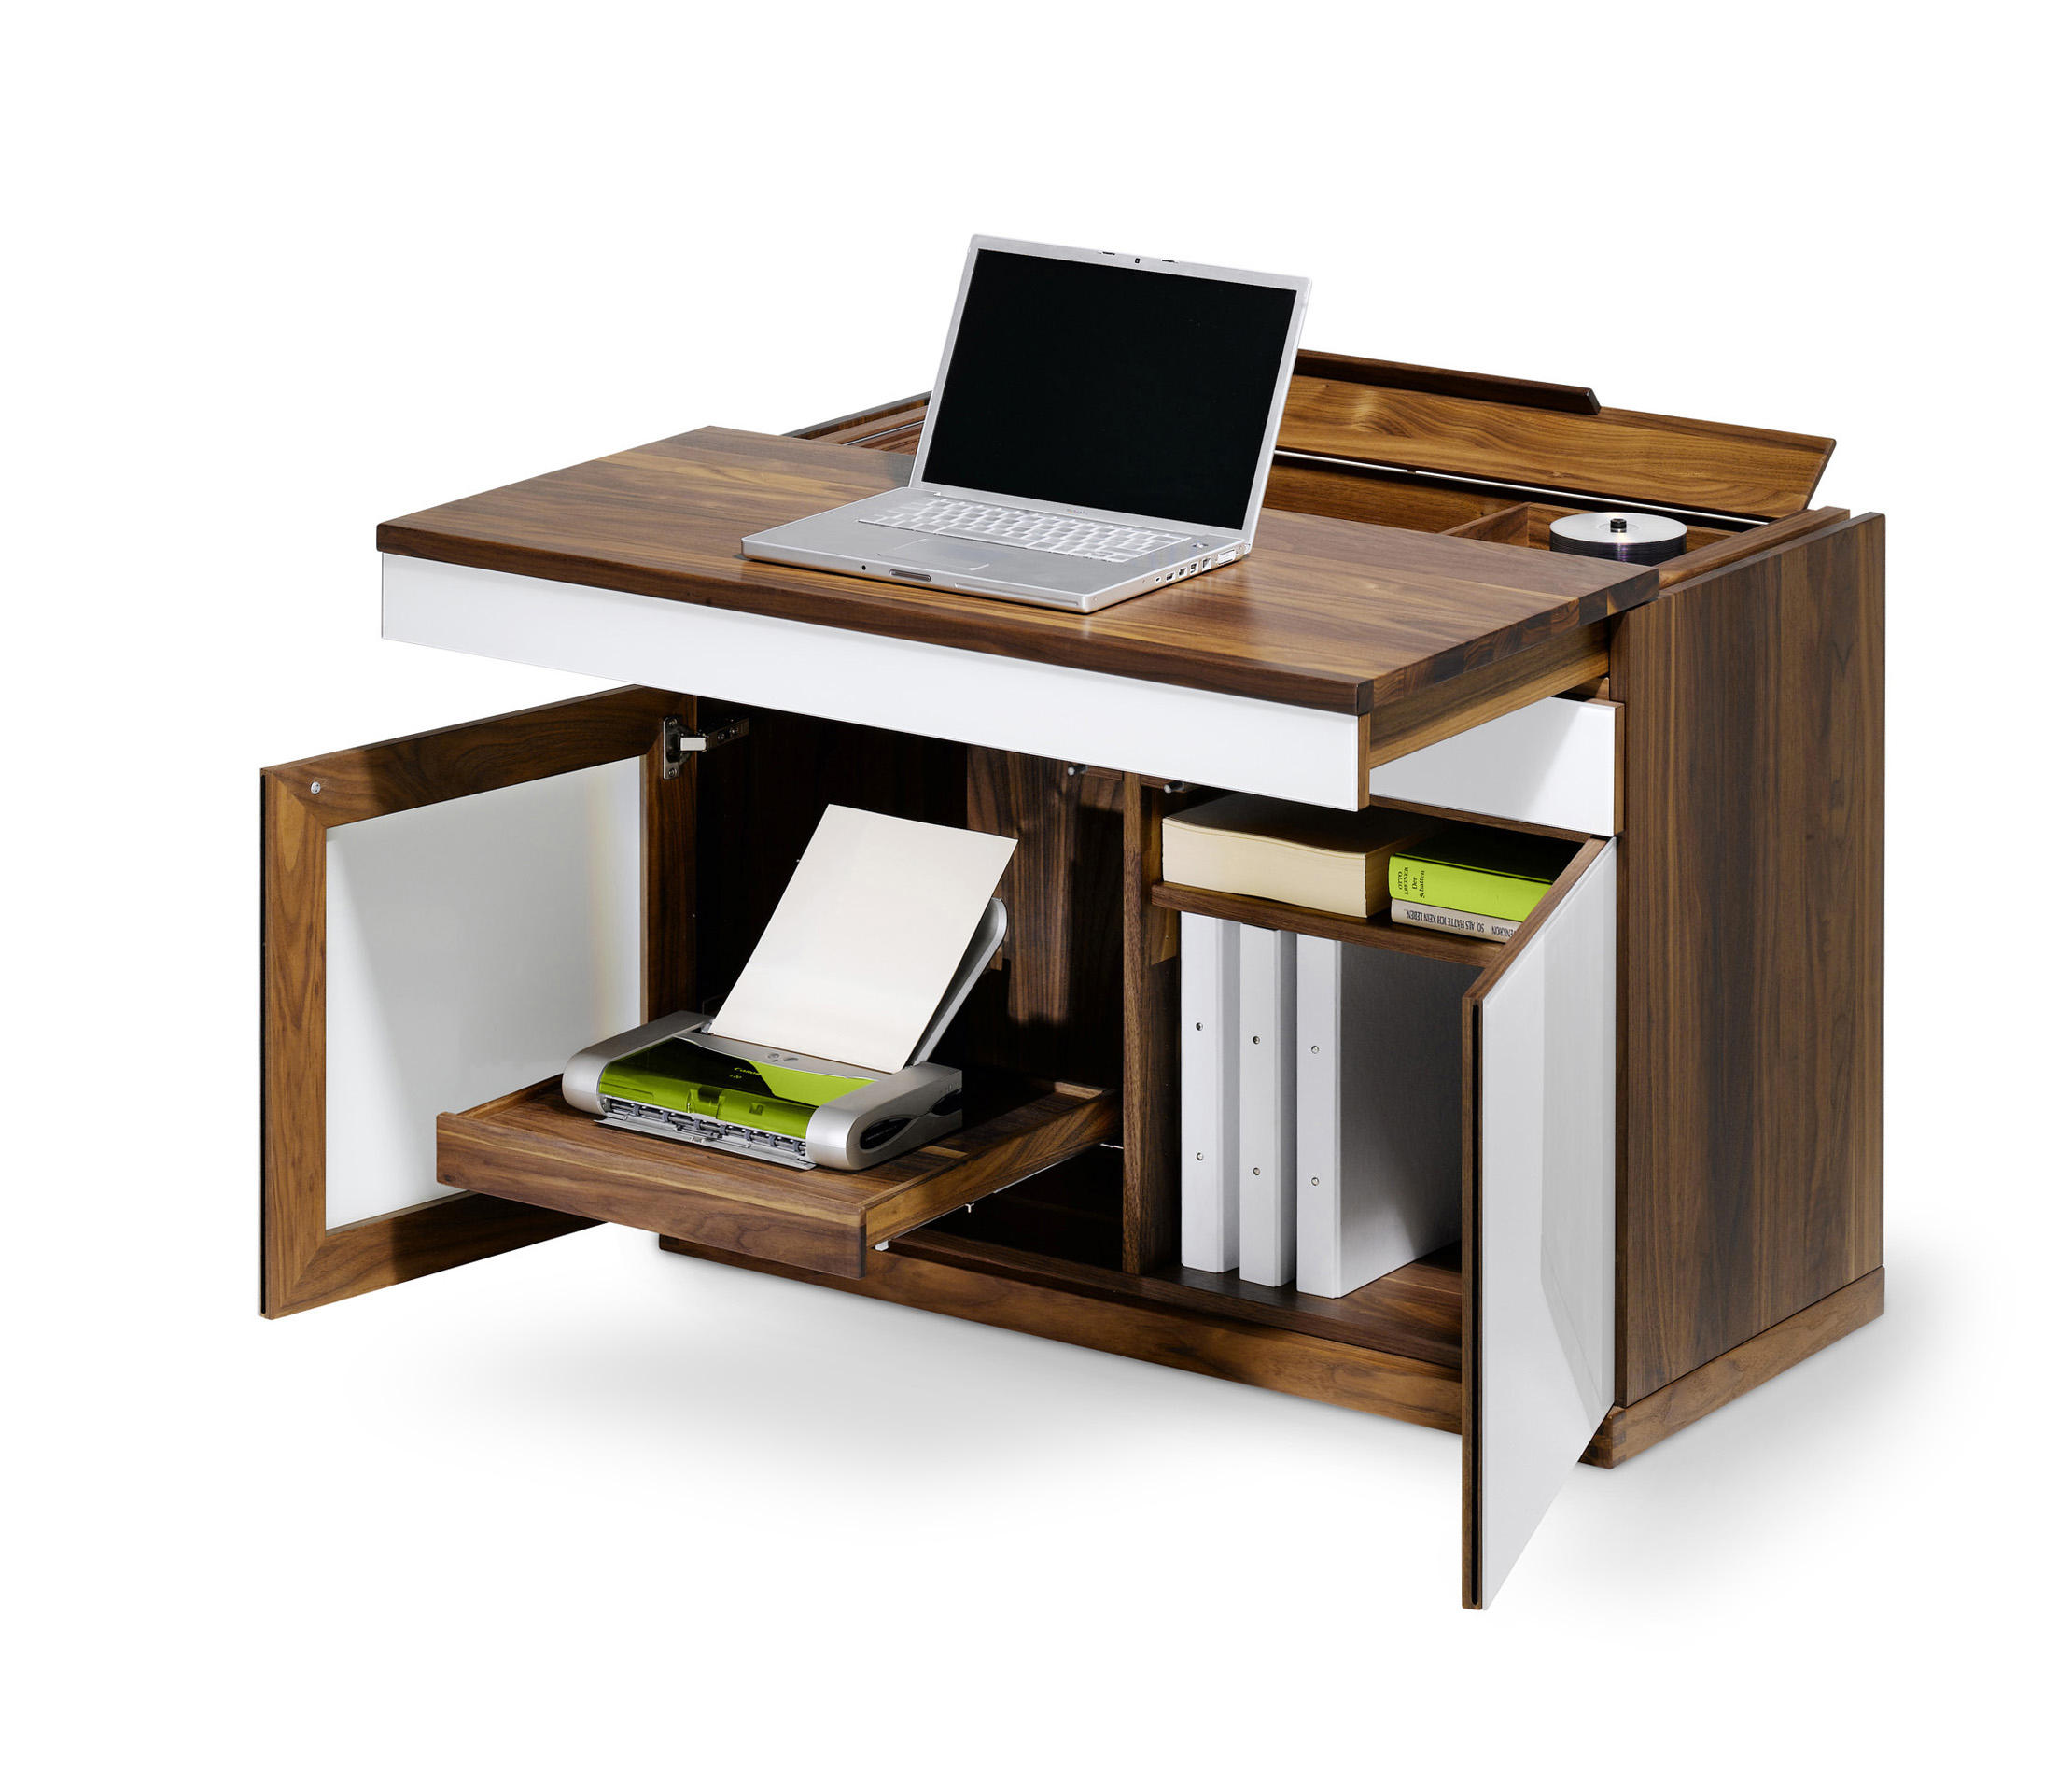 cubus writing desk bureaus from team 7 architonic. Black Bedroom Furniture Sets. Home Design Ideas